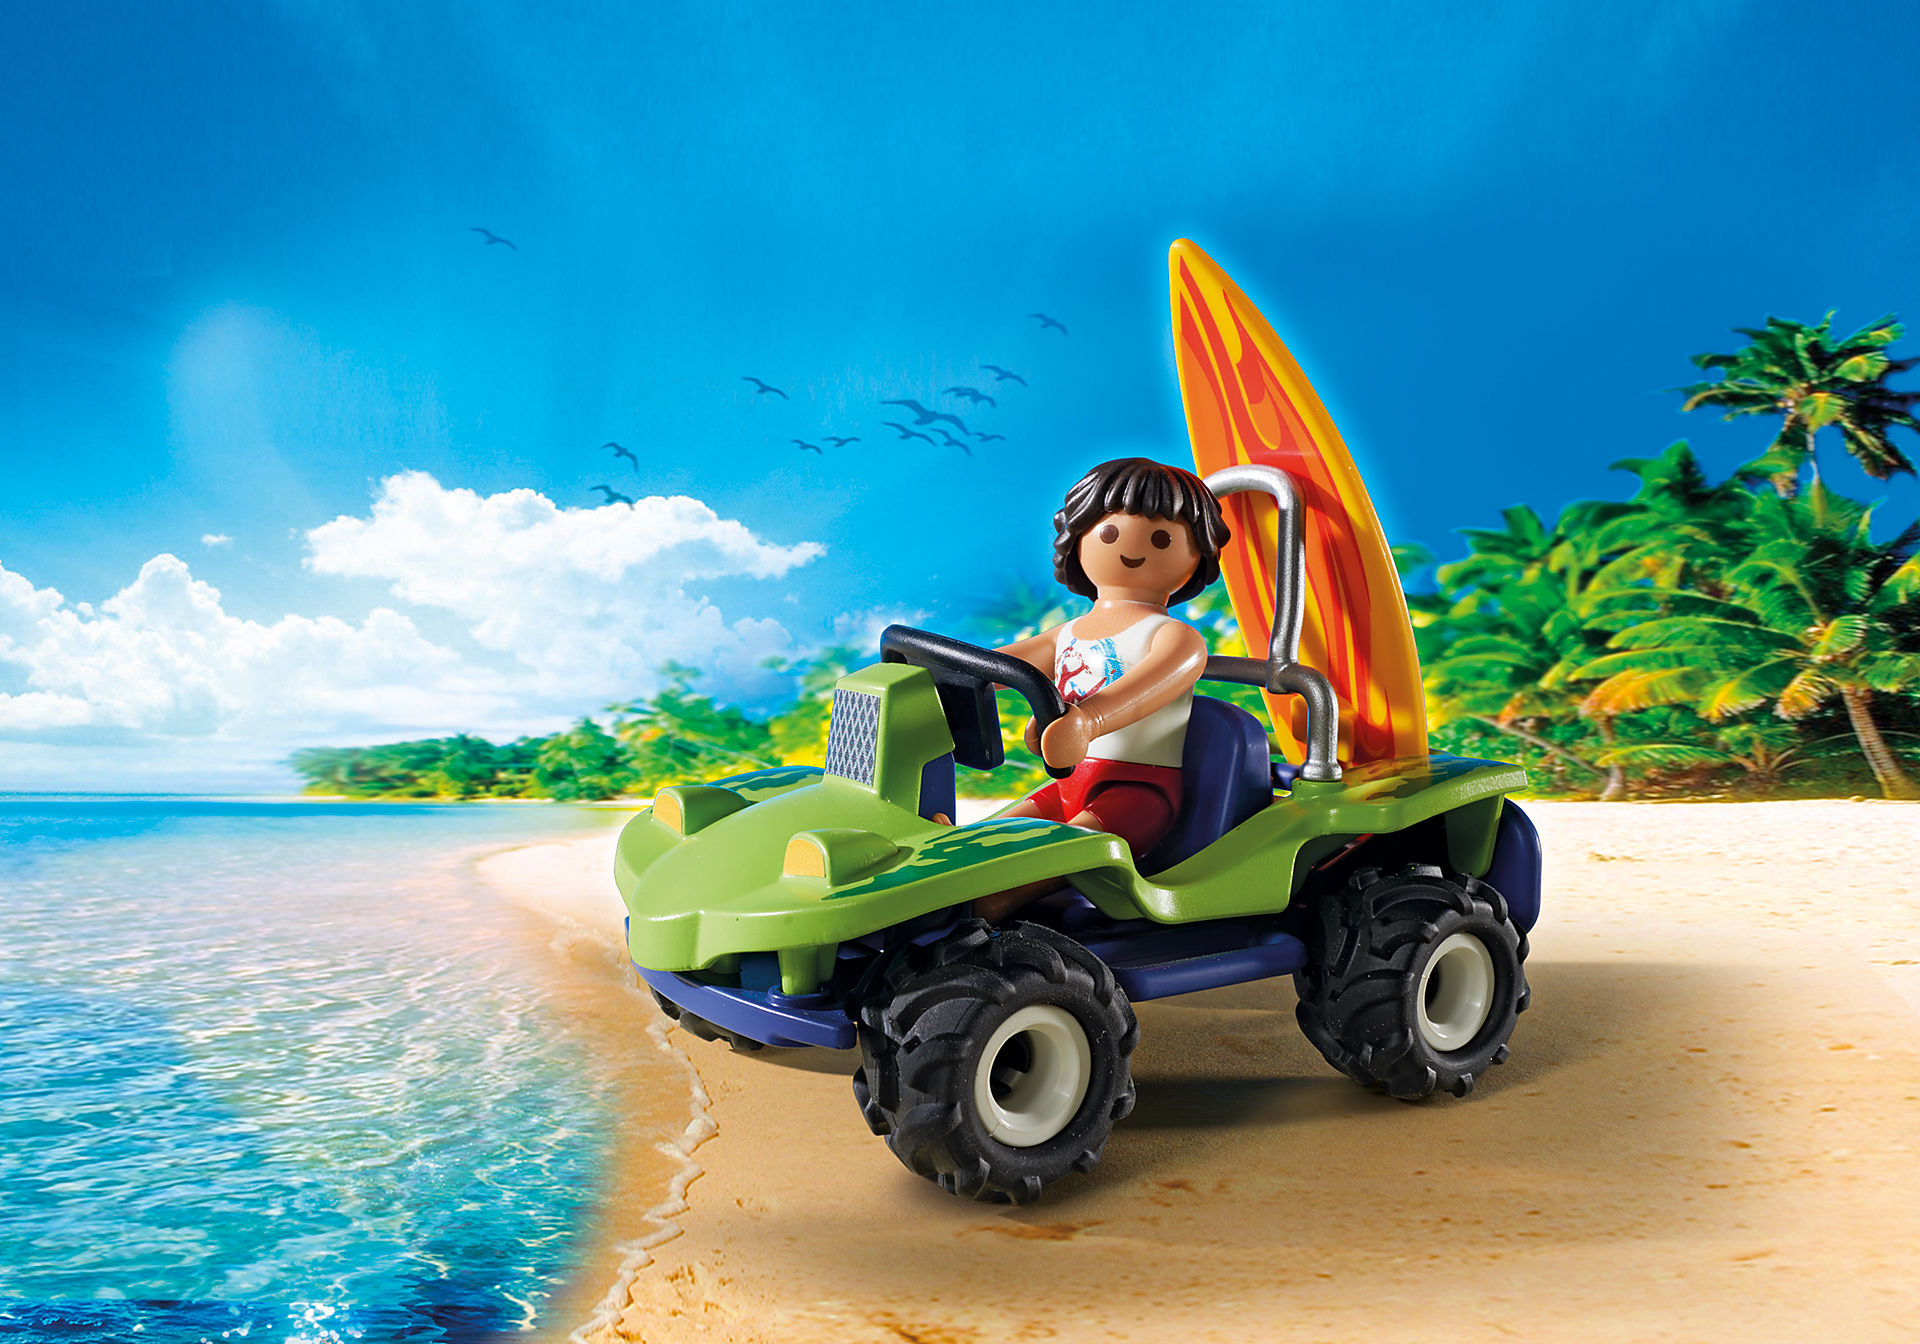 http://media.playmobil.com/i/playmobil/6982_product_extra1/Surfer z buggy